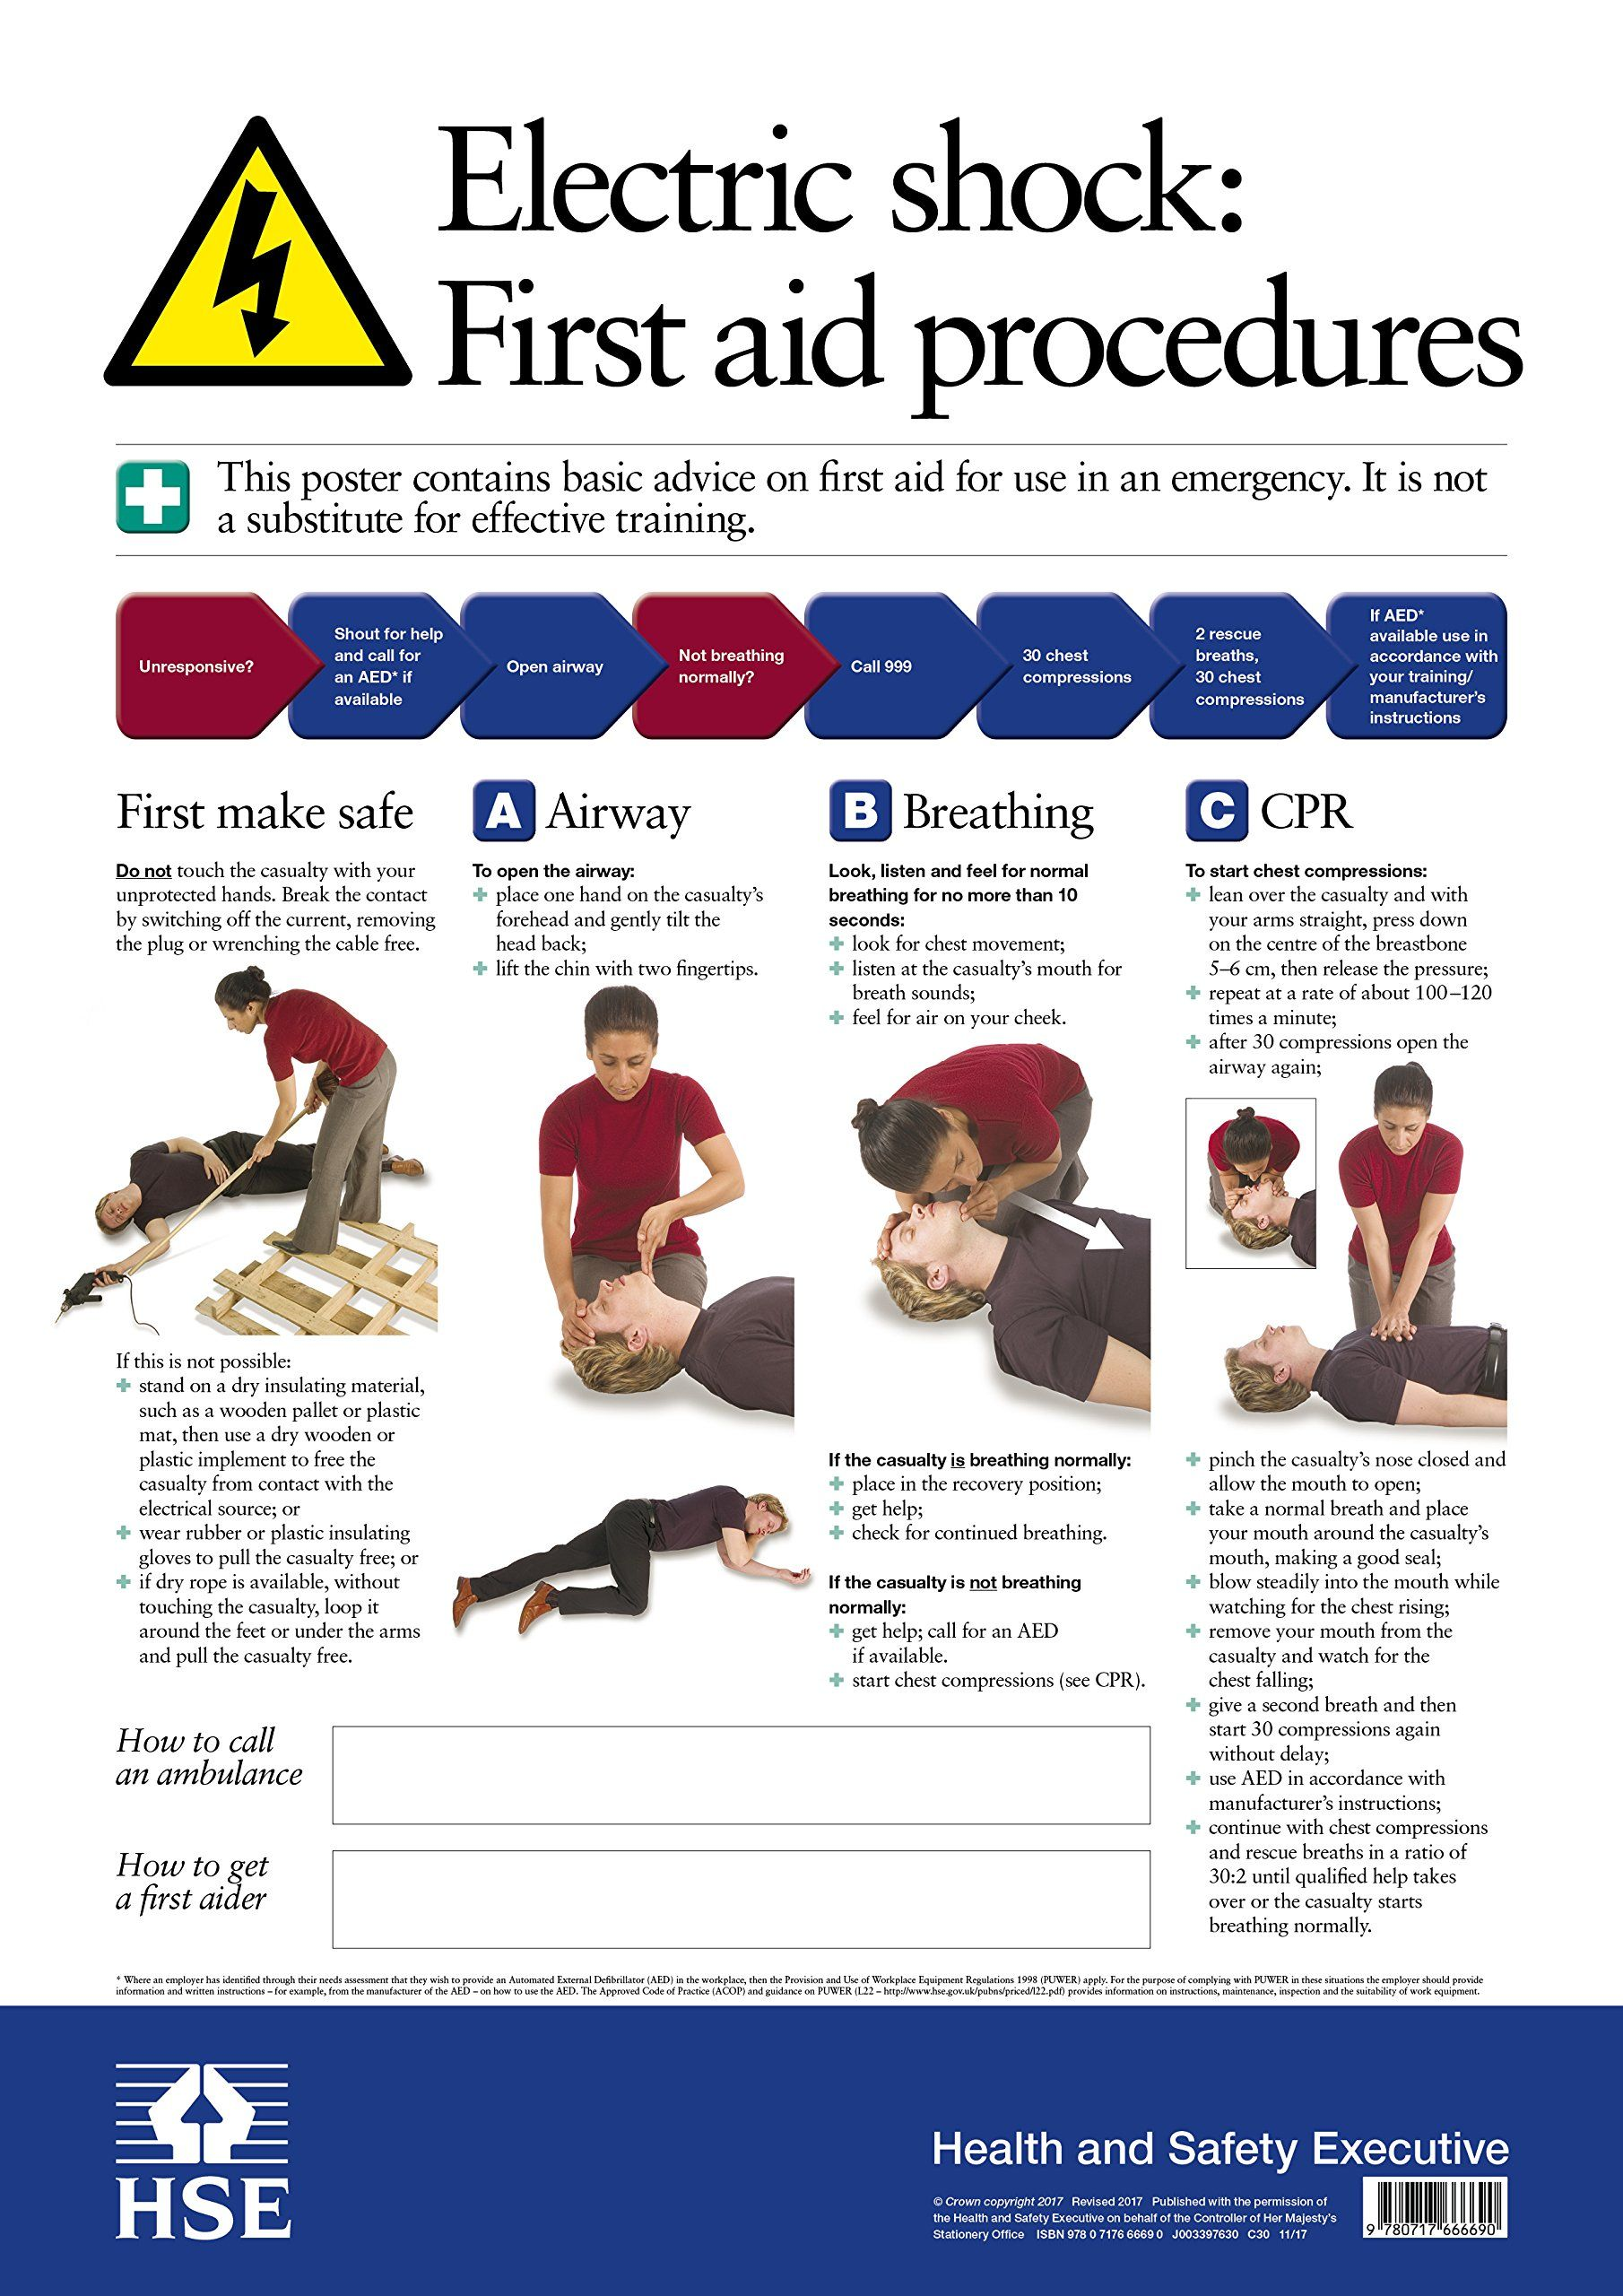 this health and safety poster gives basic advice on first aidthis health and safety poster gives basic advice on first aid procedures if someone has